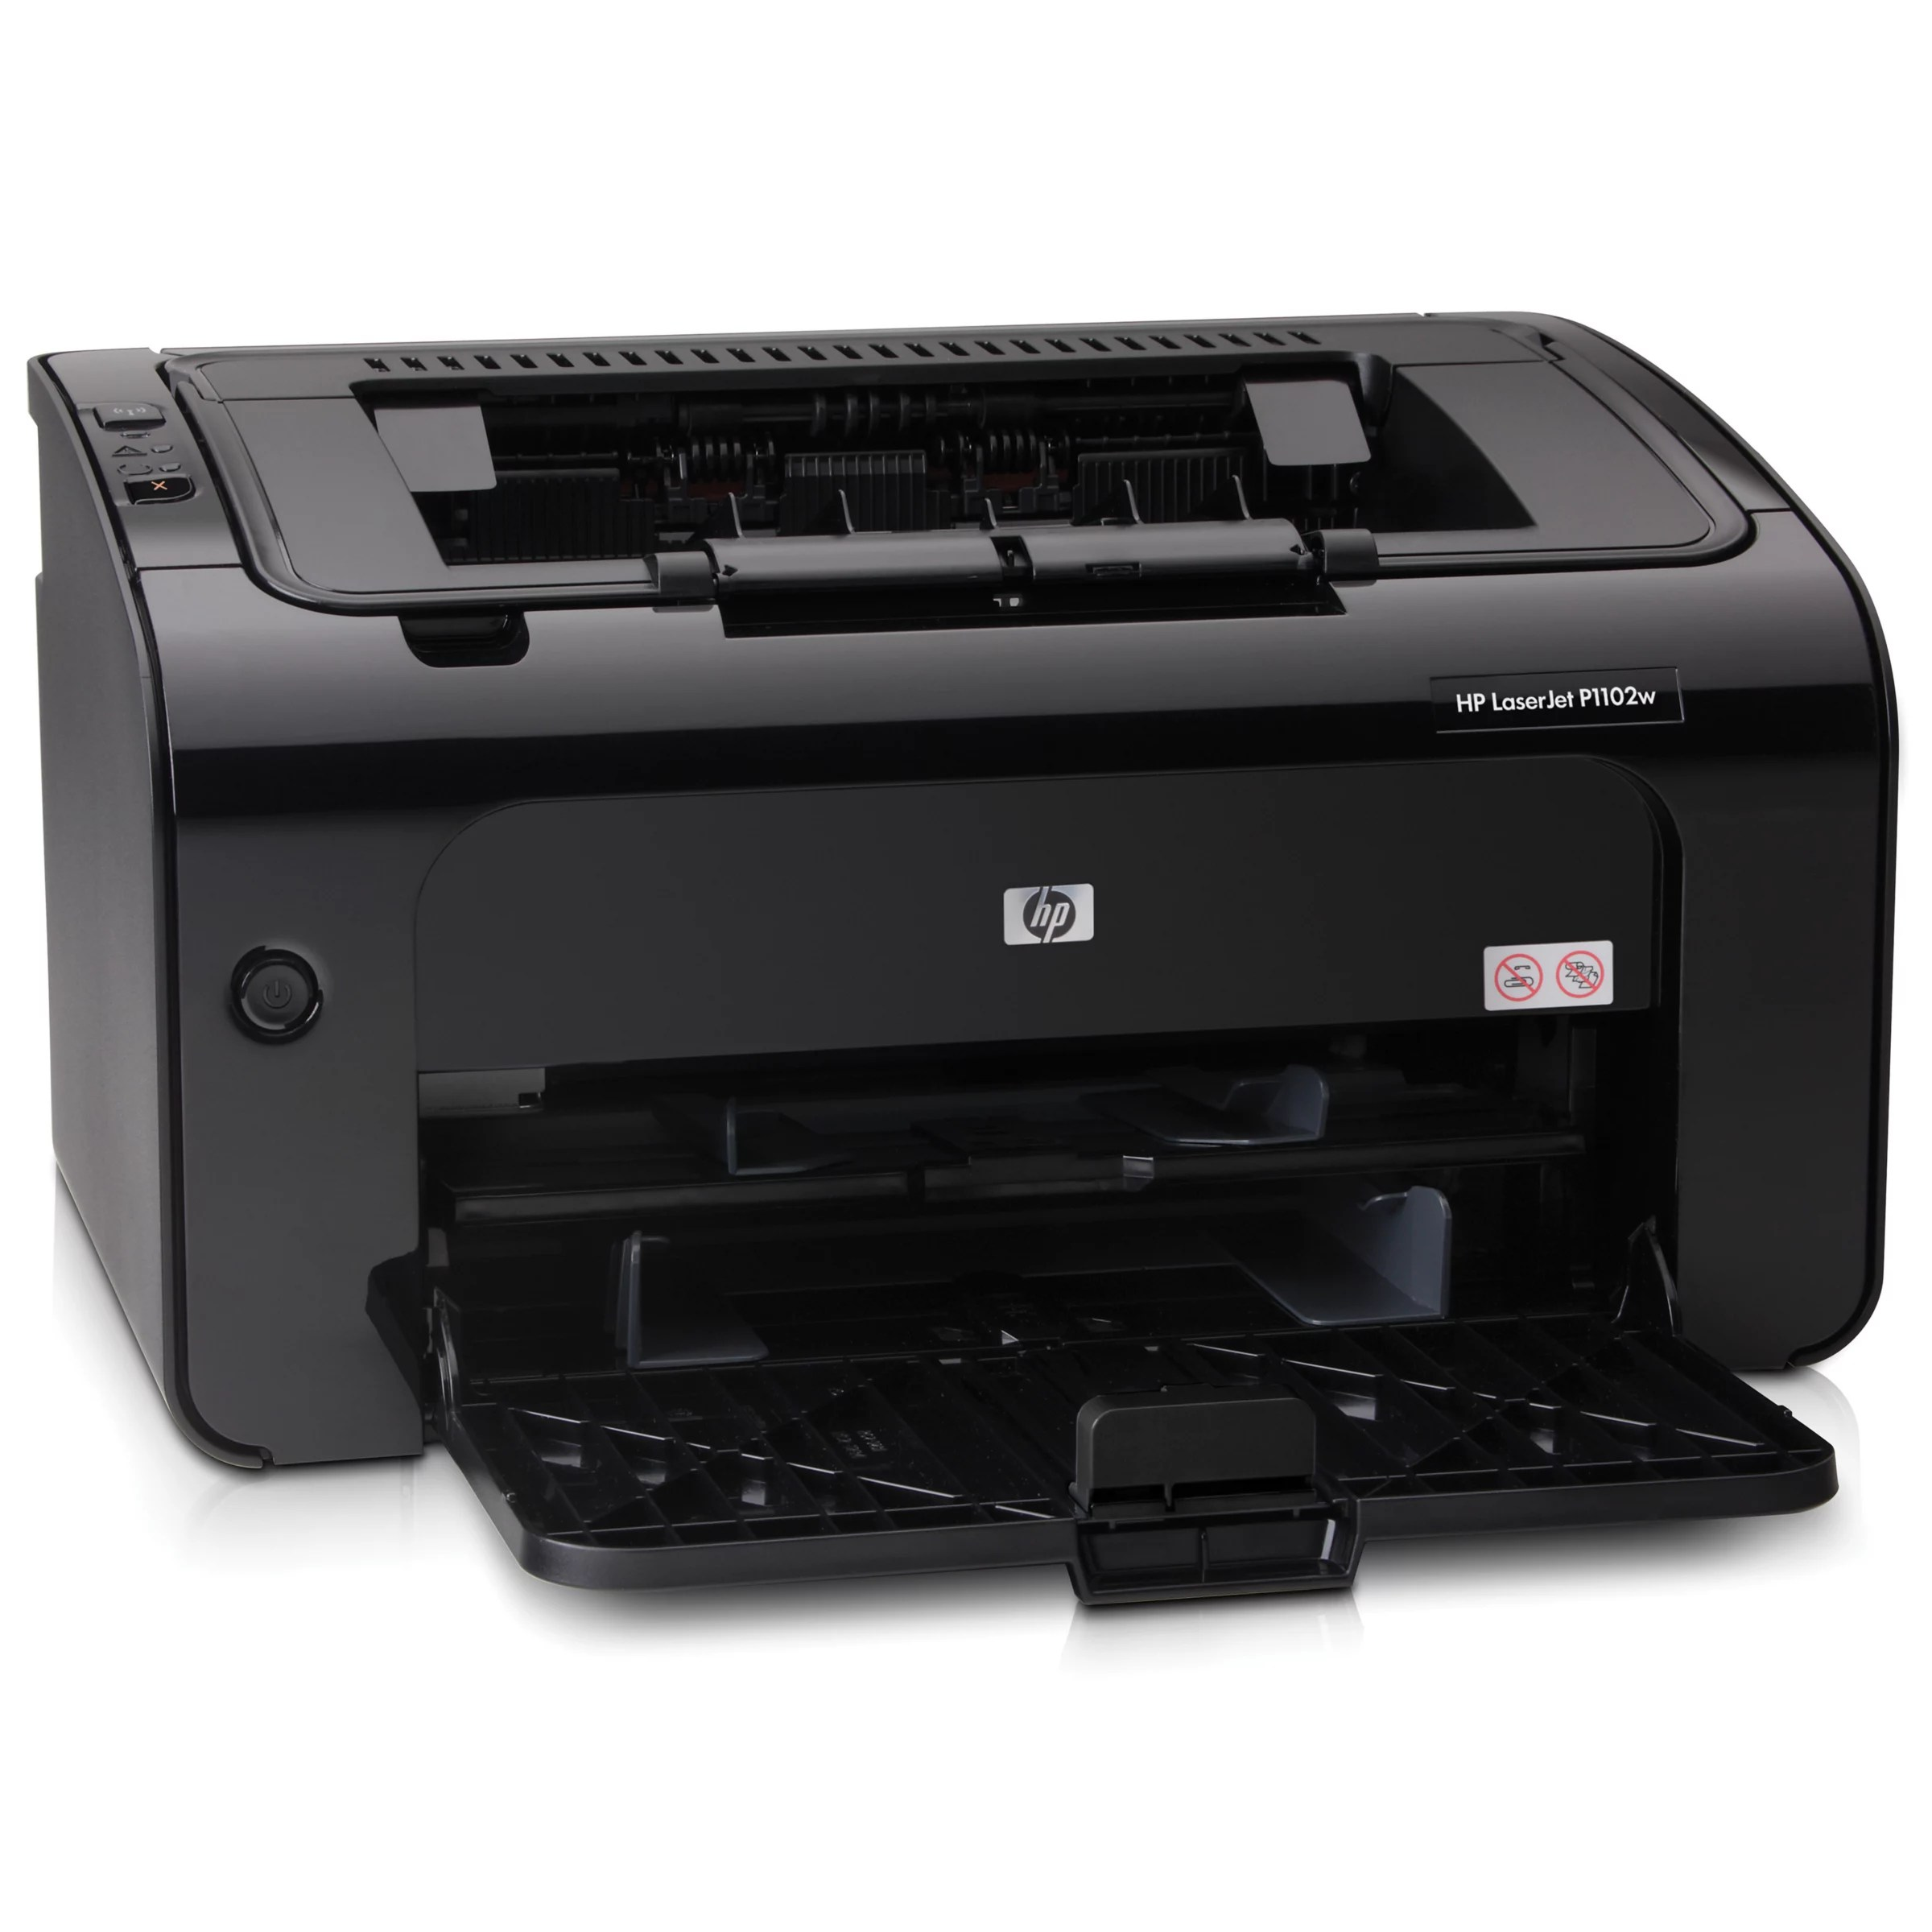 Hp Laserjet P1102w : laserjet, p1102w, LaserJet, P1102W, Wireless, Printer, Wi-Fi, Instant-On, Technology, Lewis, Partners